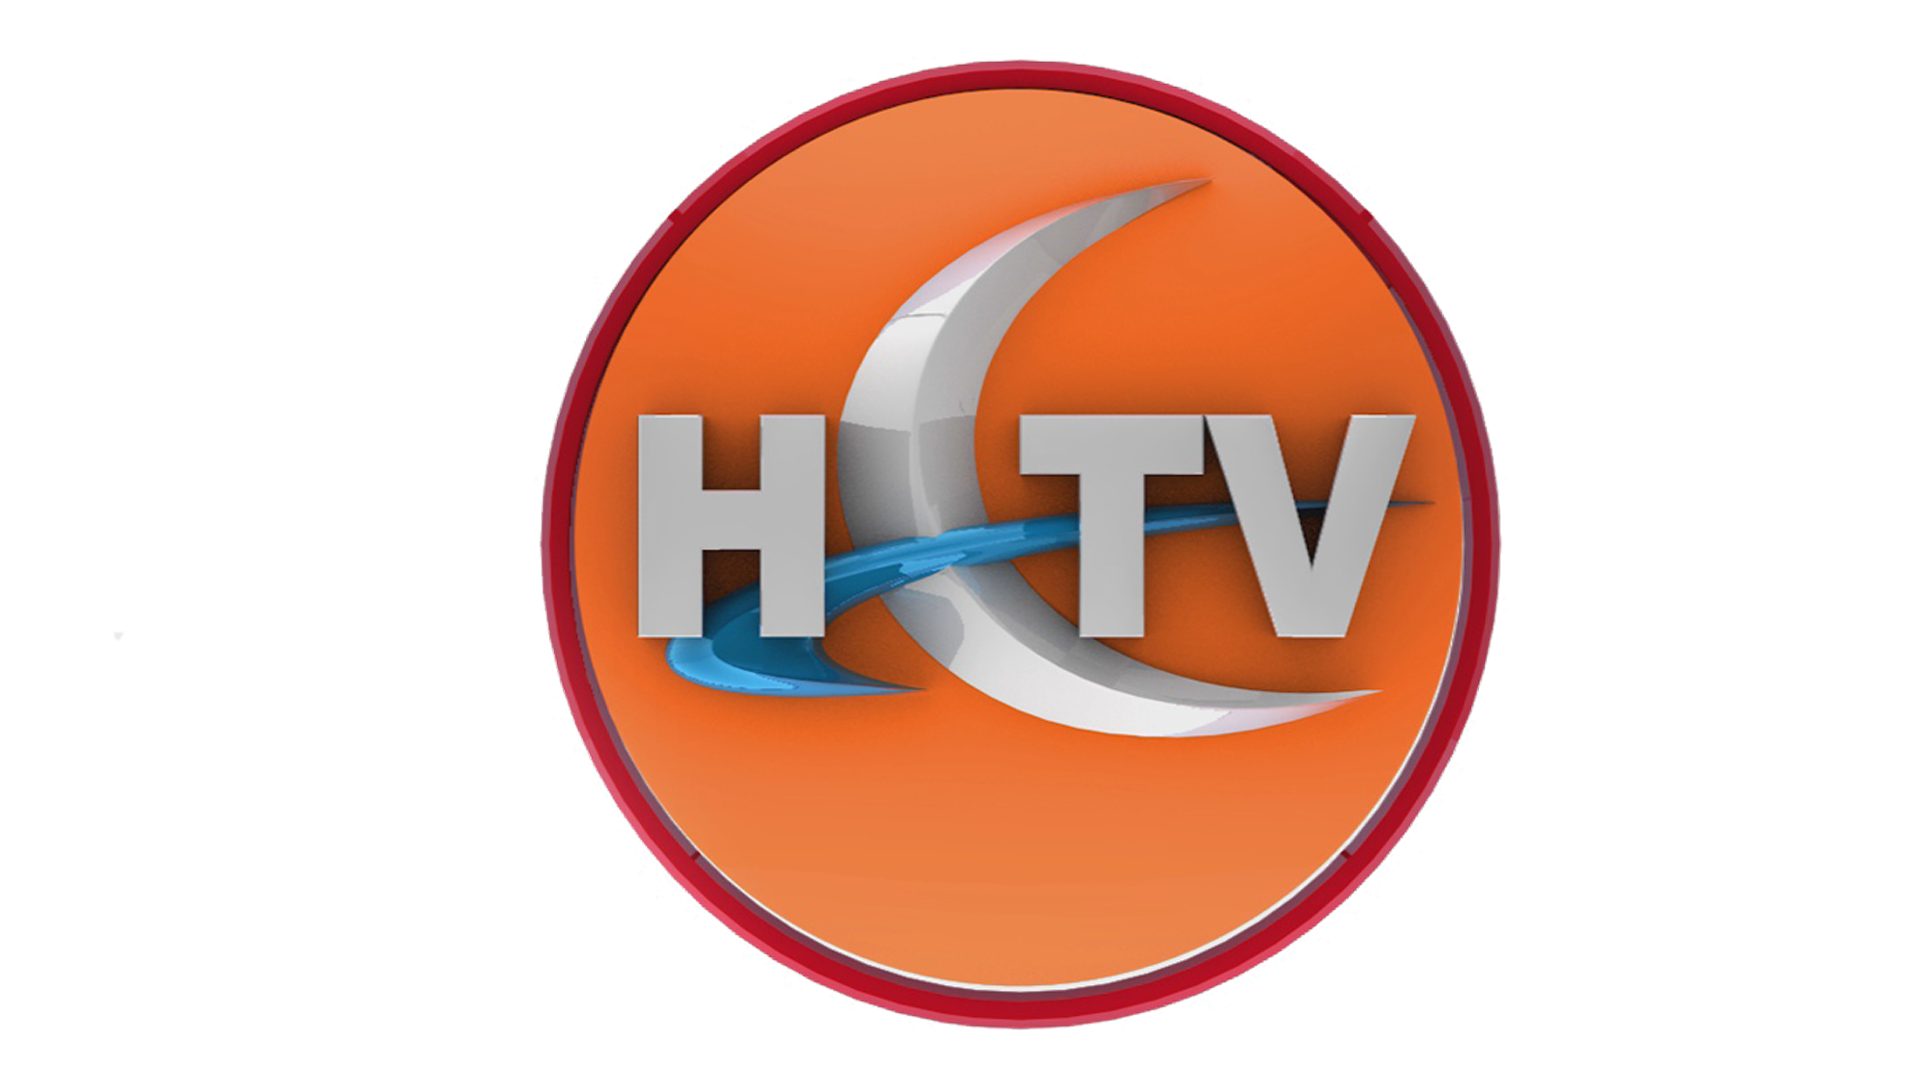 Horn Cable Television - Wikipedia